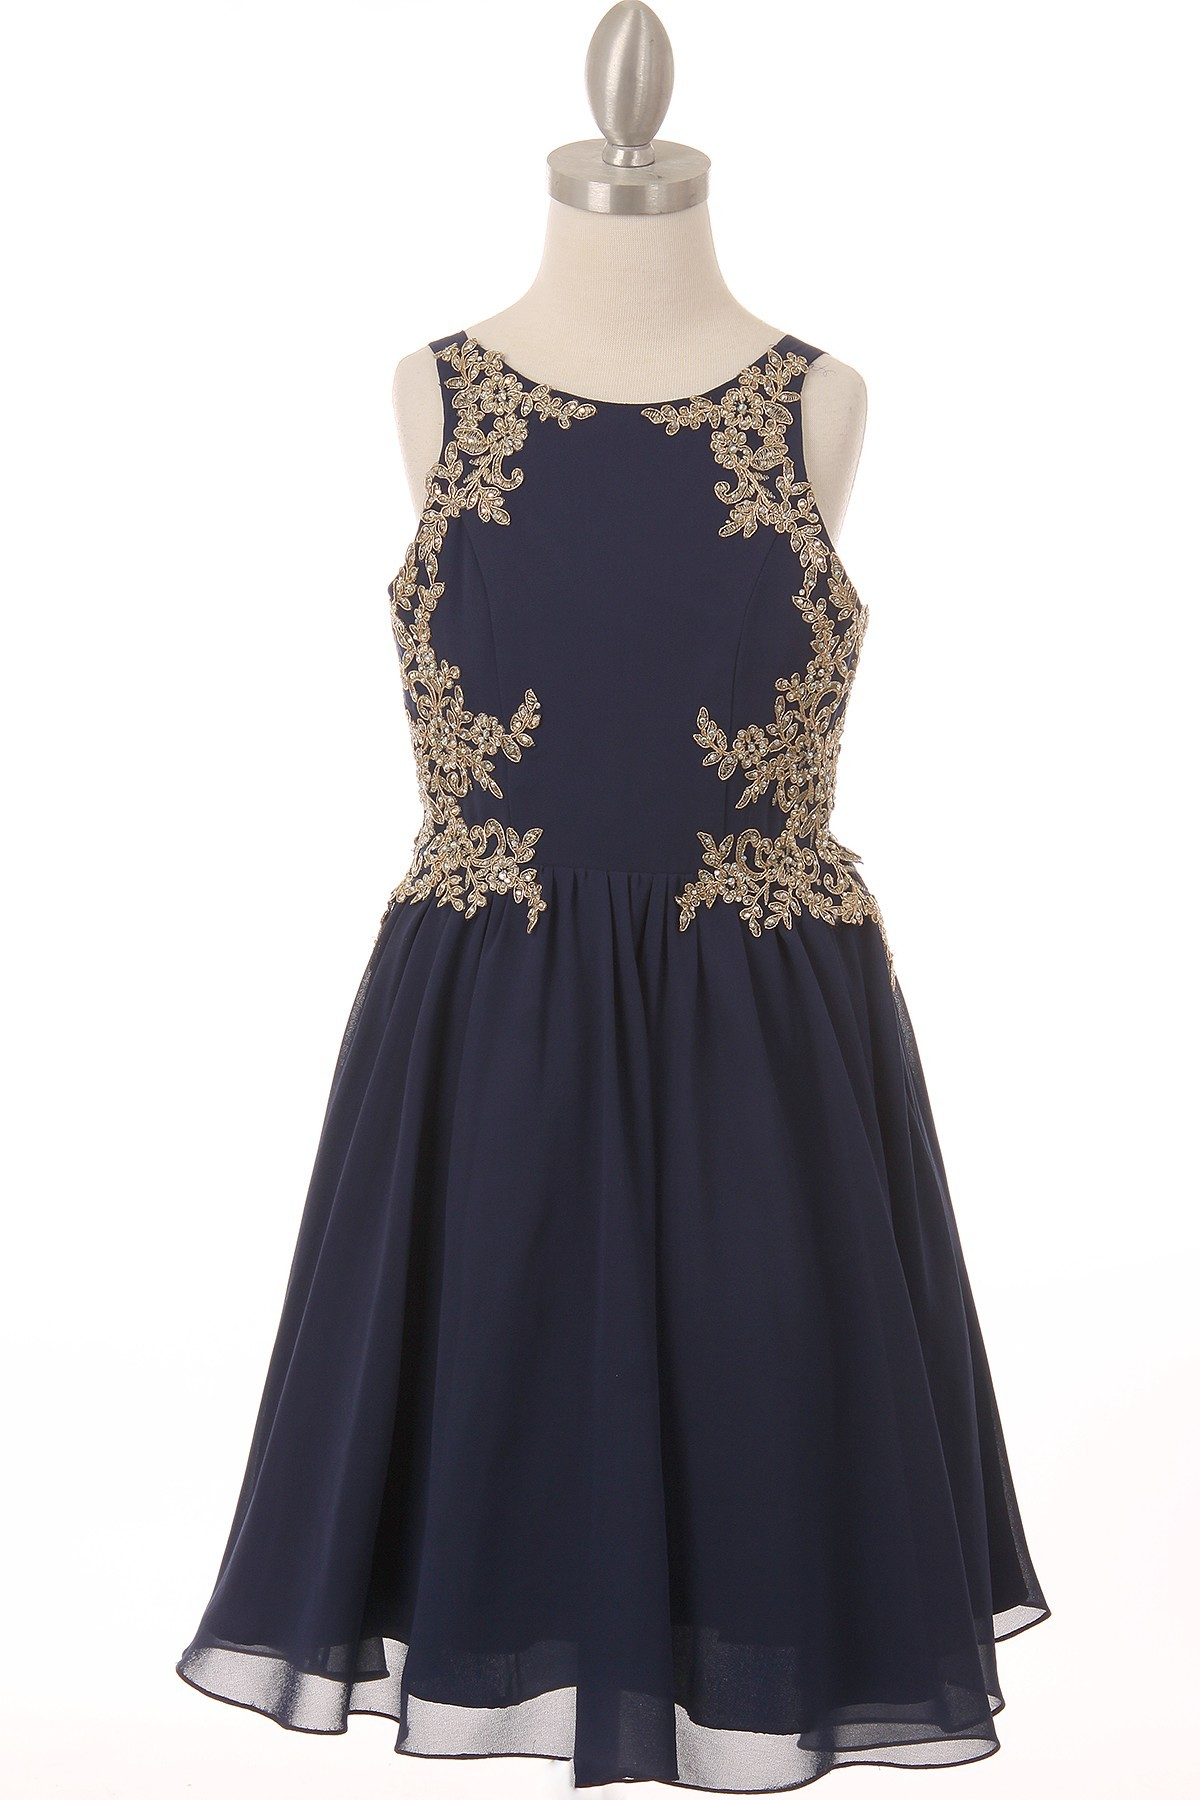 girls navy dress with golden lace